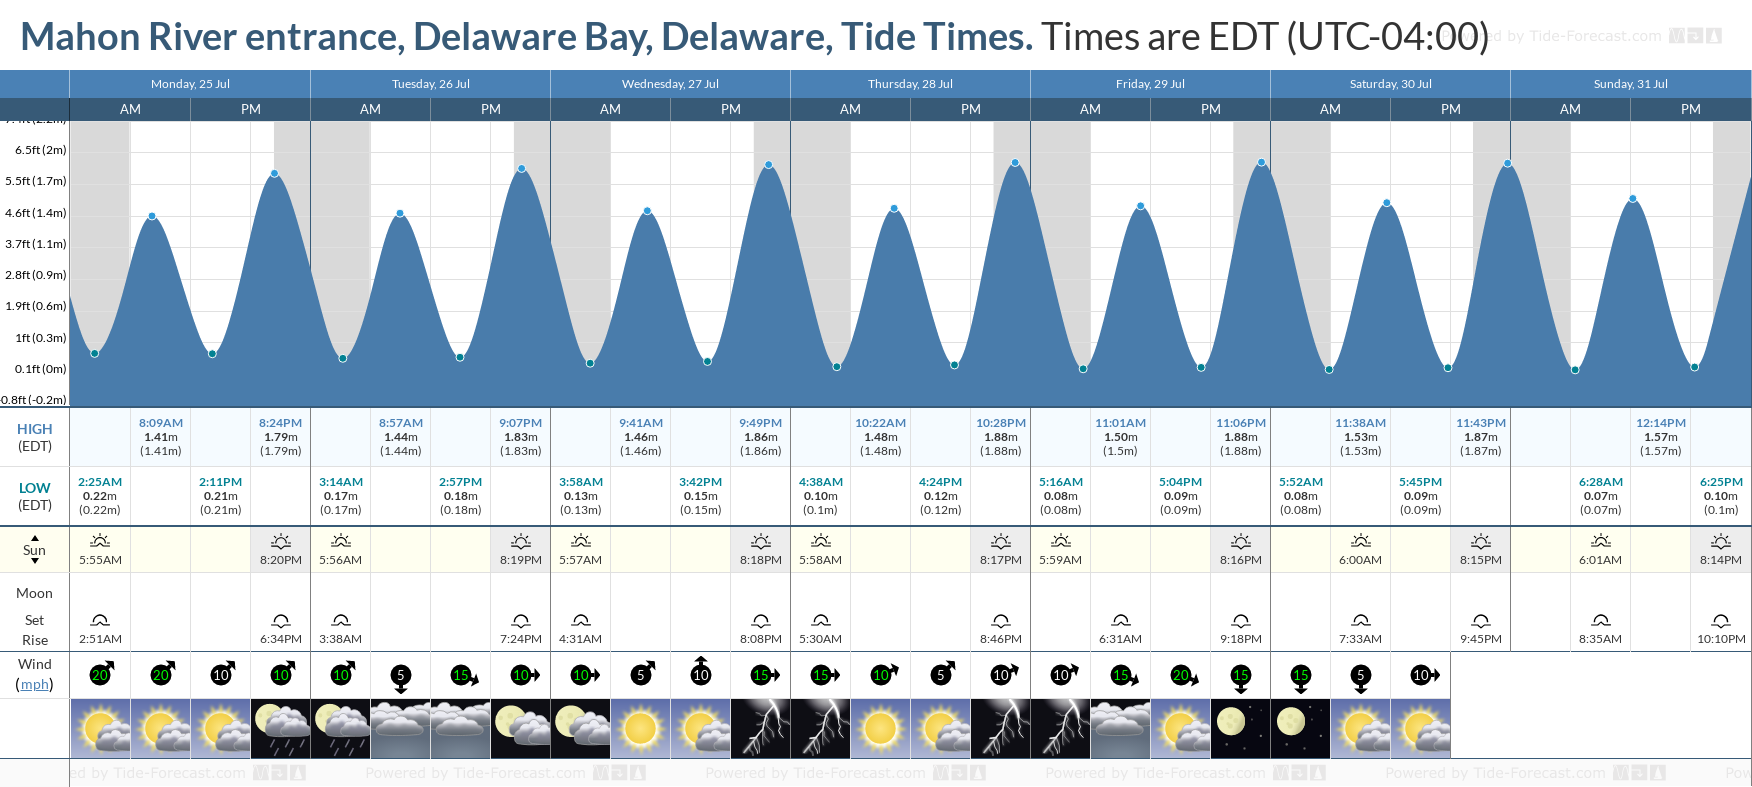 Mahon River entrance, Delaware Bay, Delaware Tide Chart including high and low tide tide times for the next 7 days